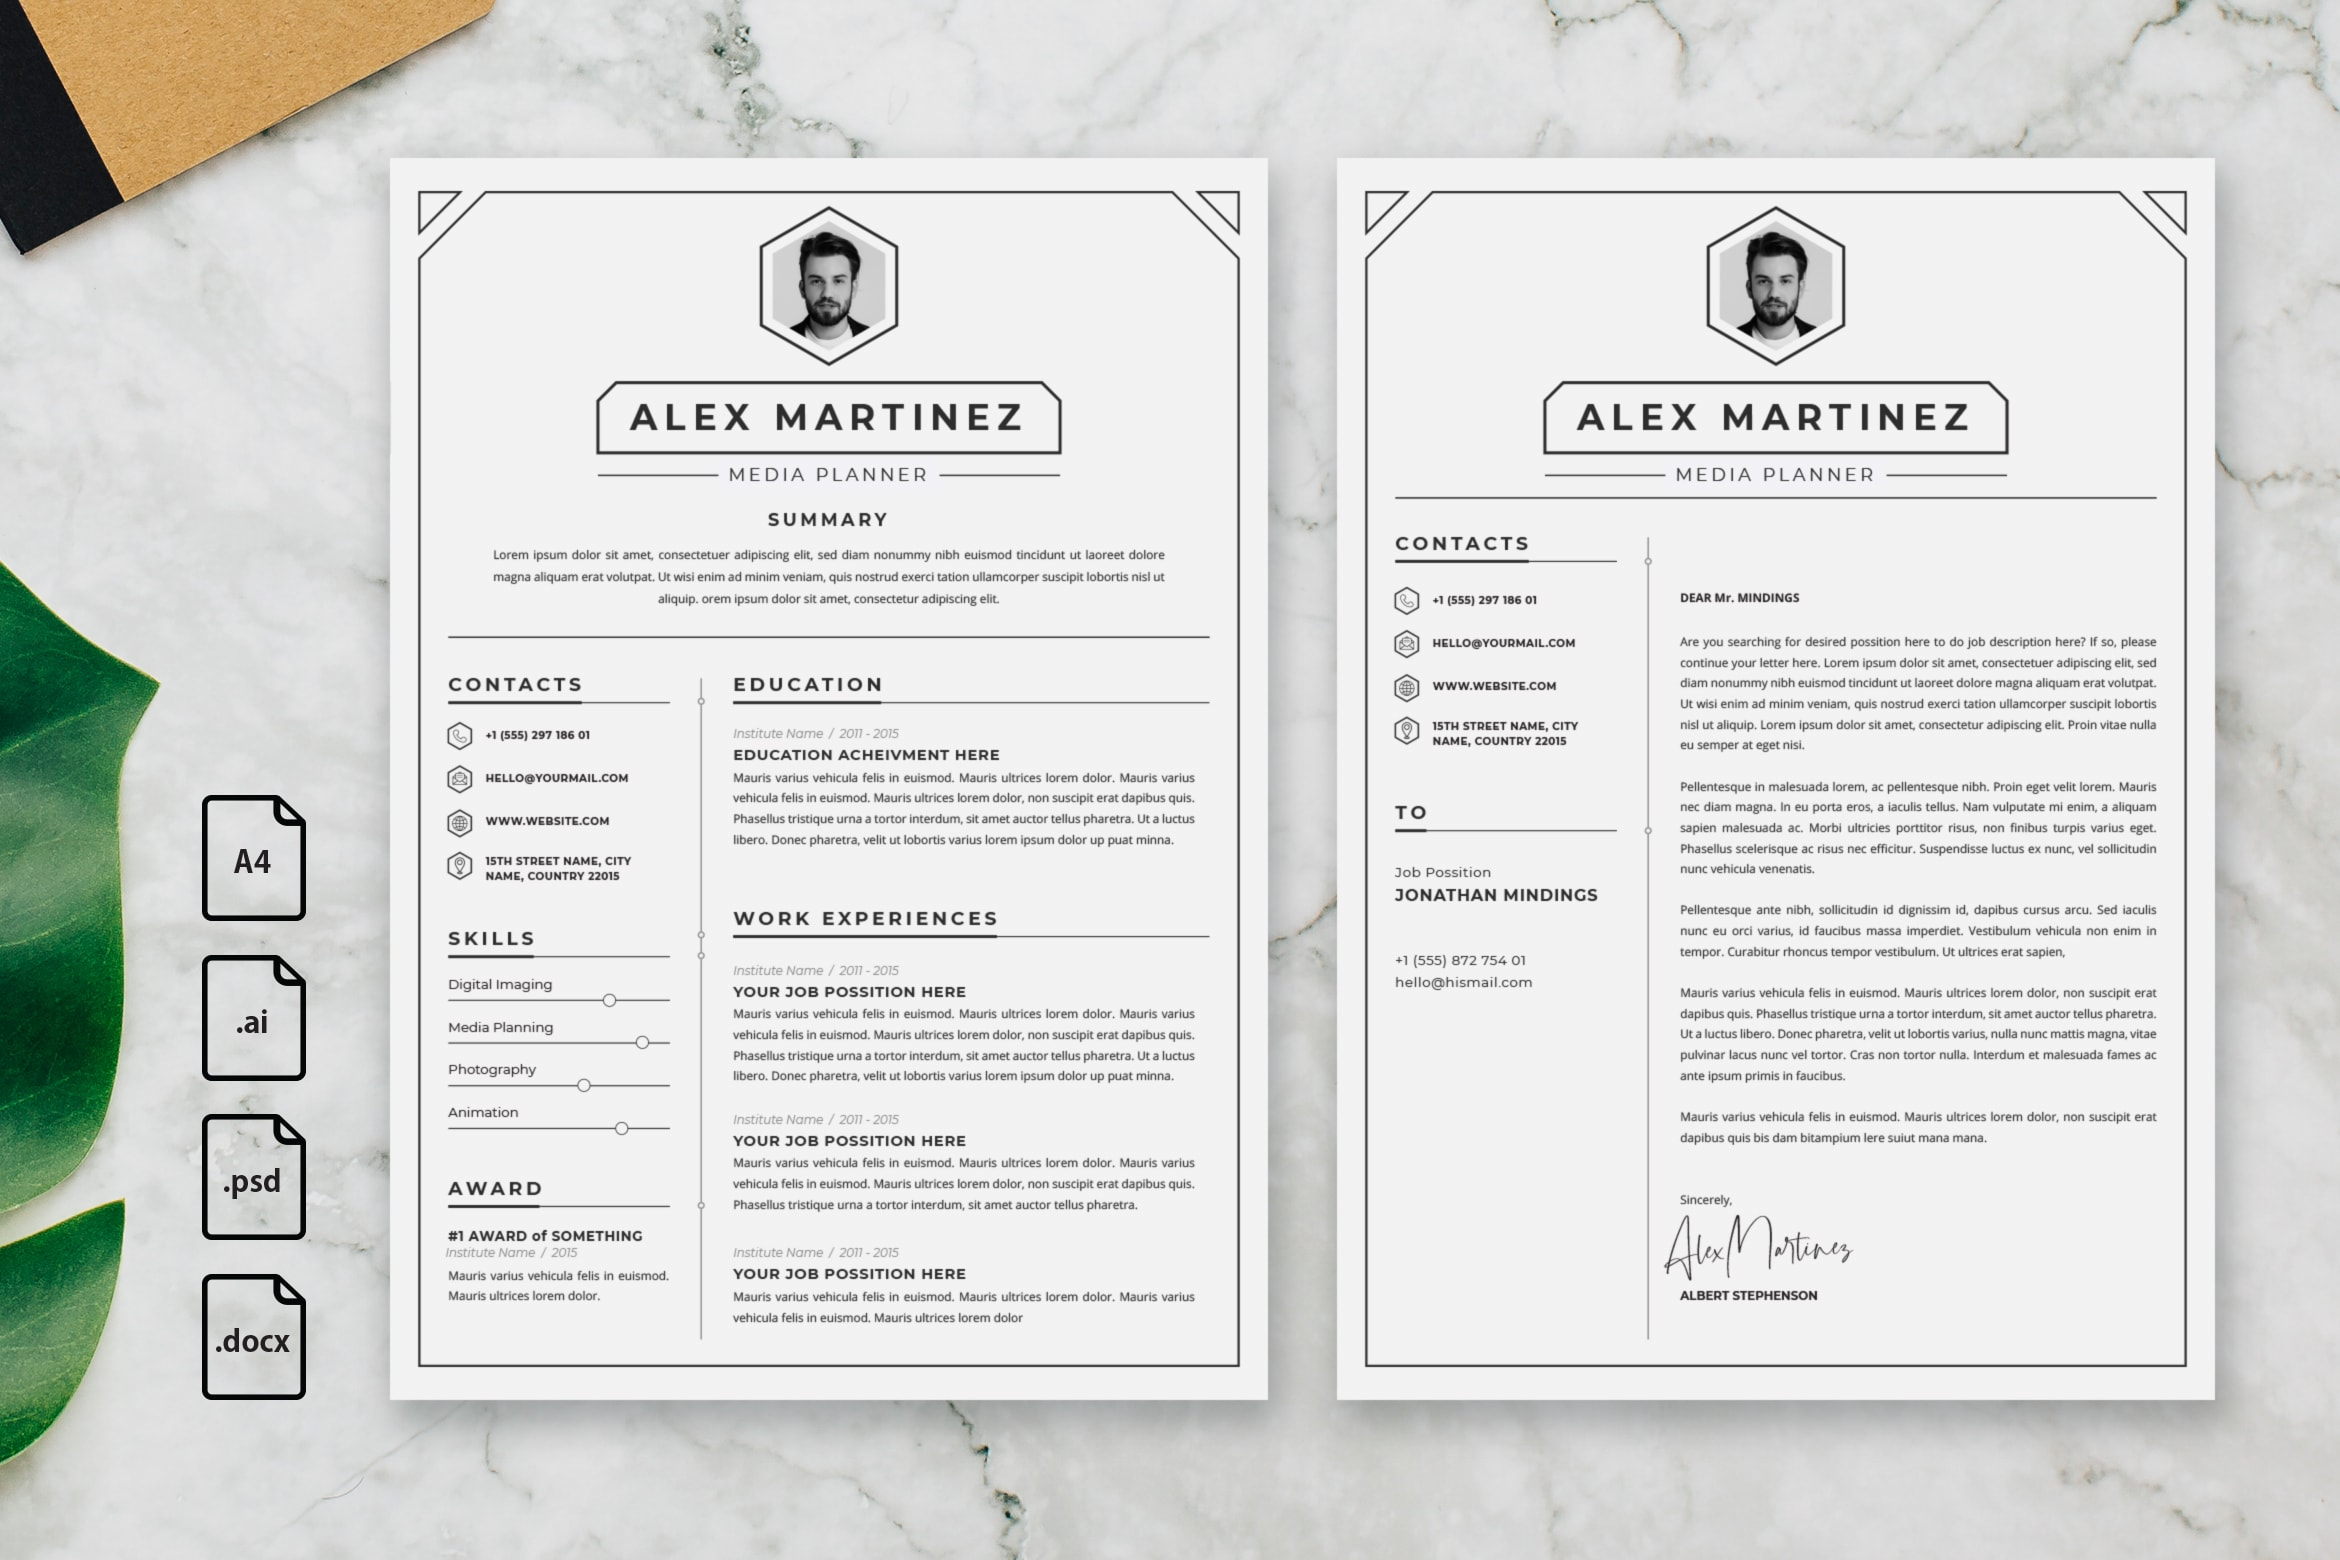 CV Resume - Media Planner Profile